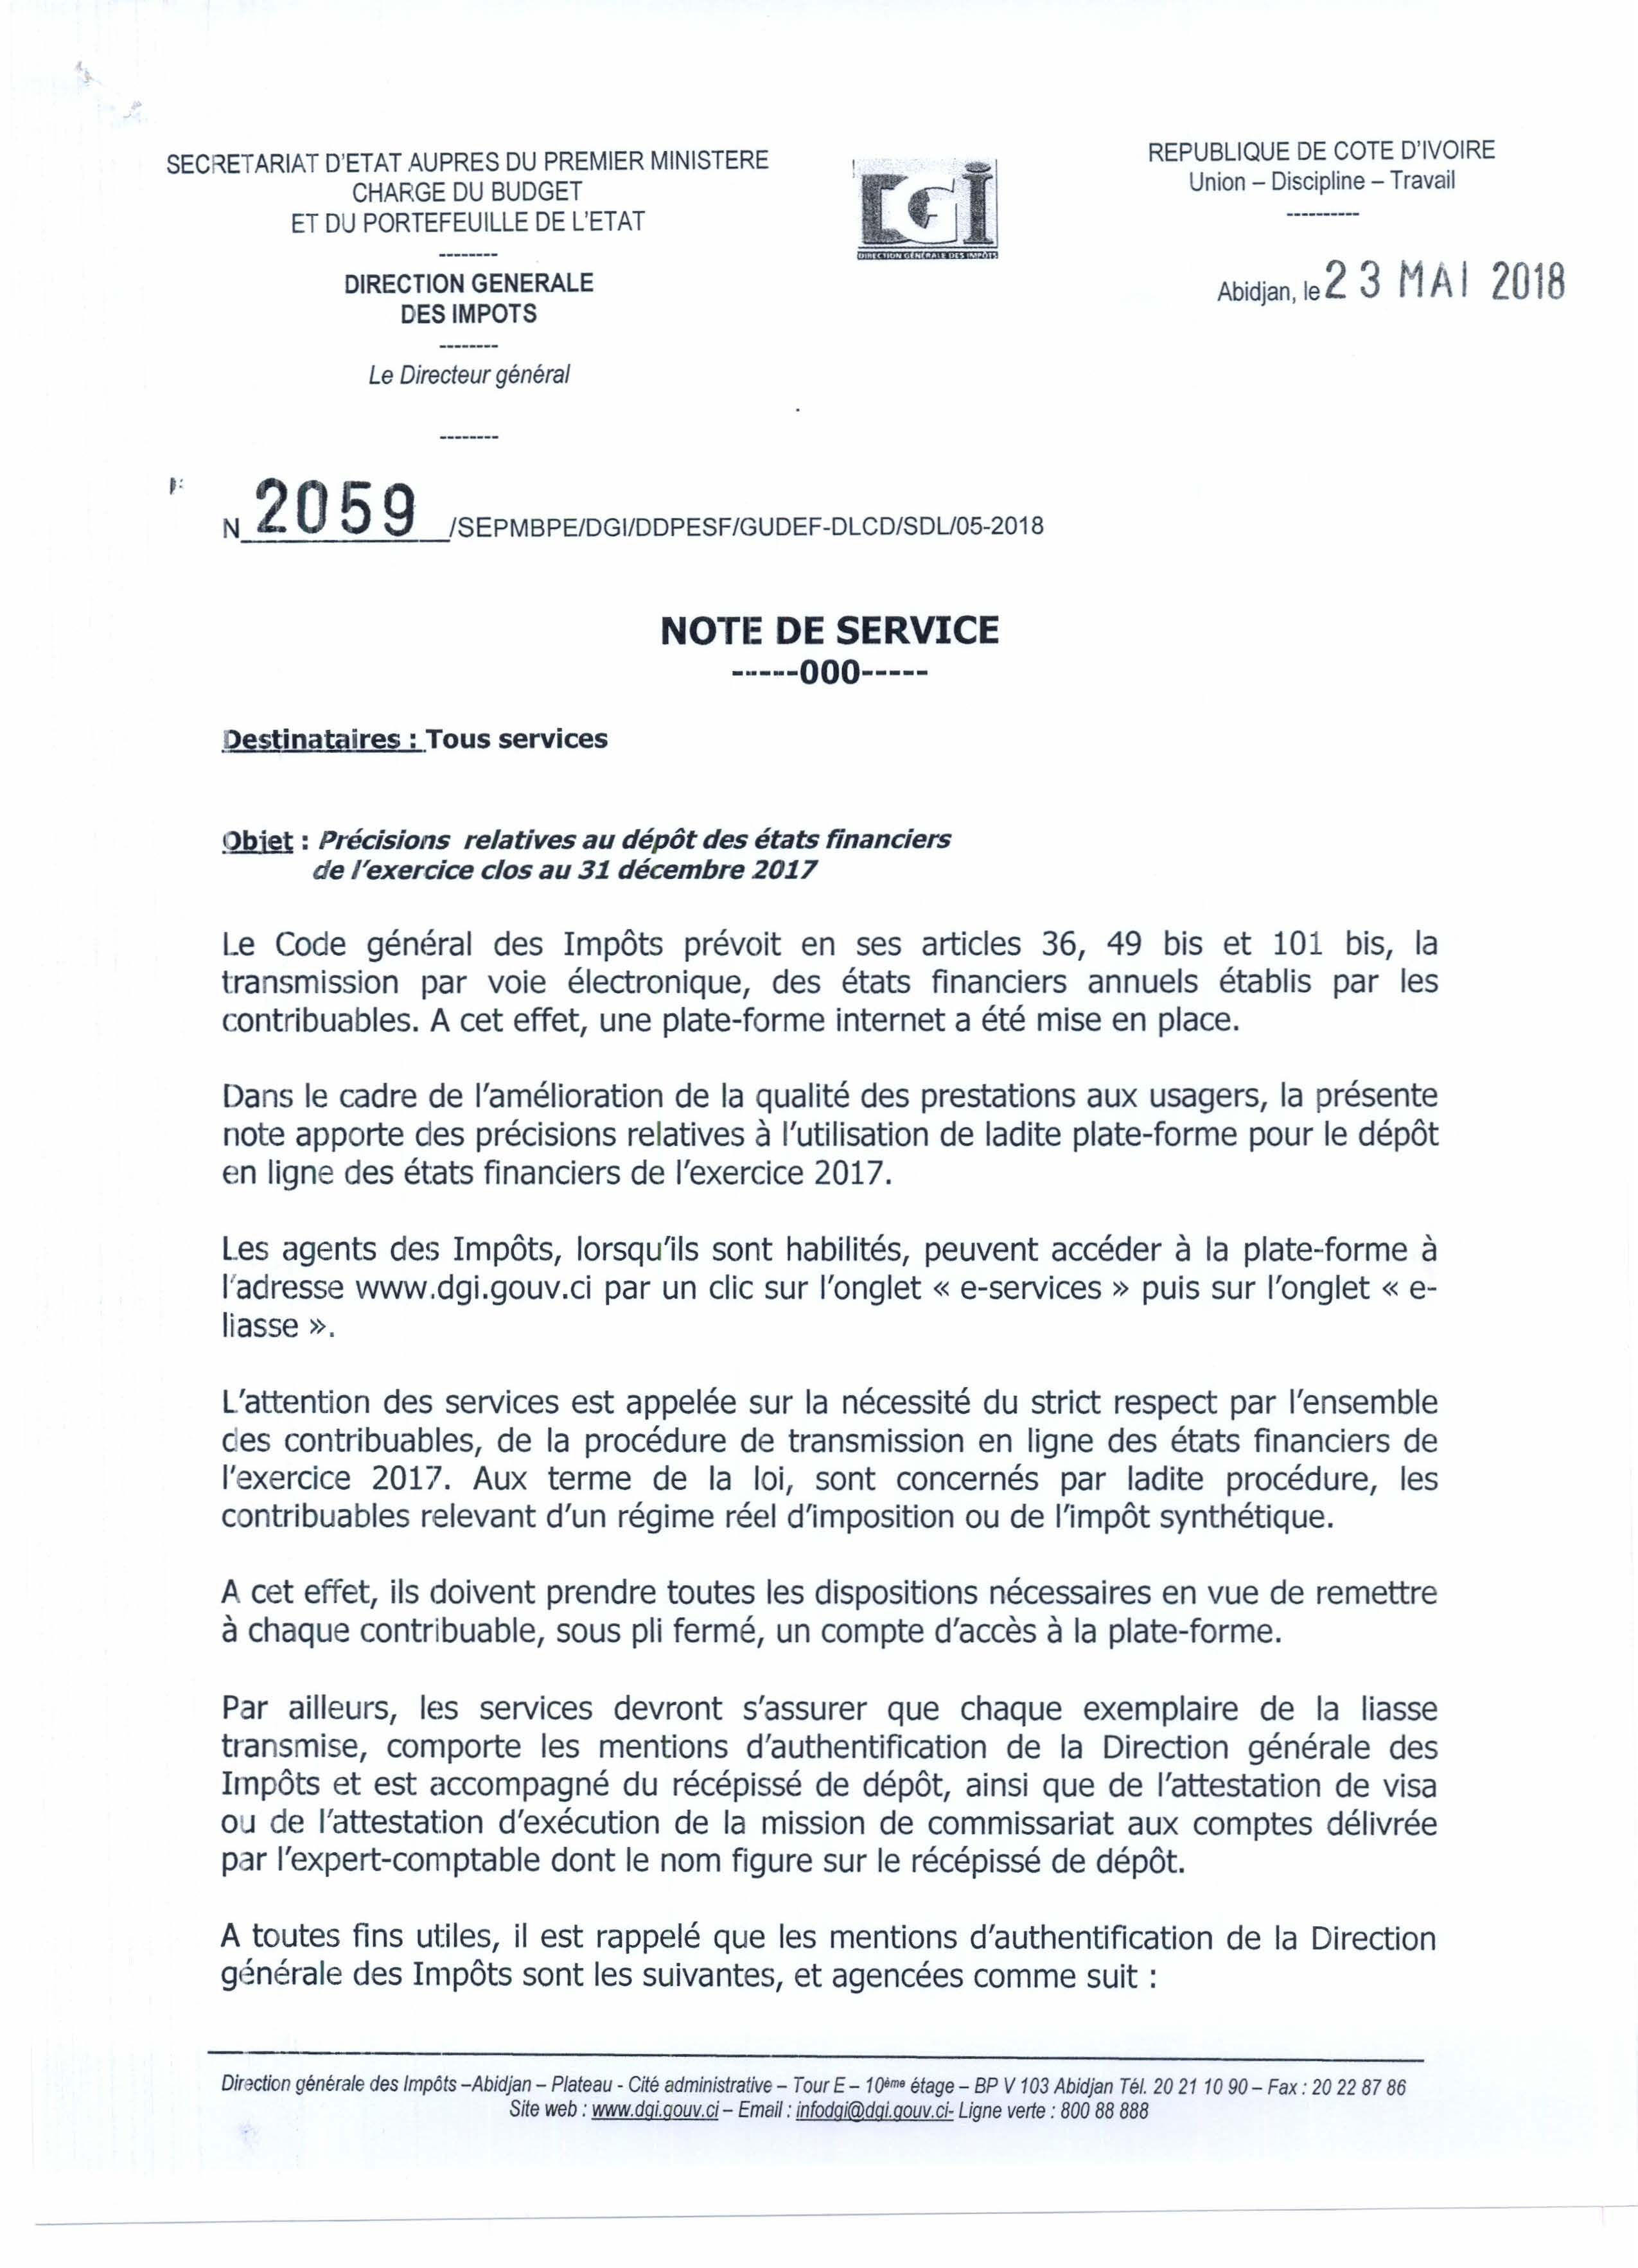 INFORMATION DEPOT DES ETATS FINANCIERS – Note interne de la DGI